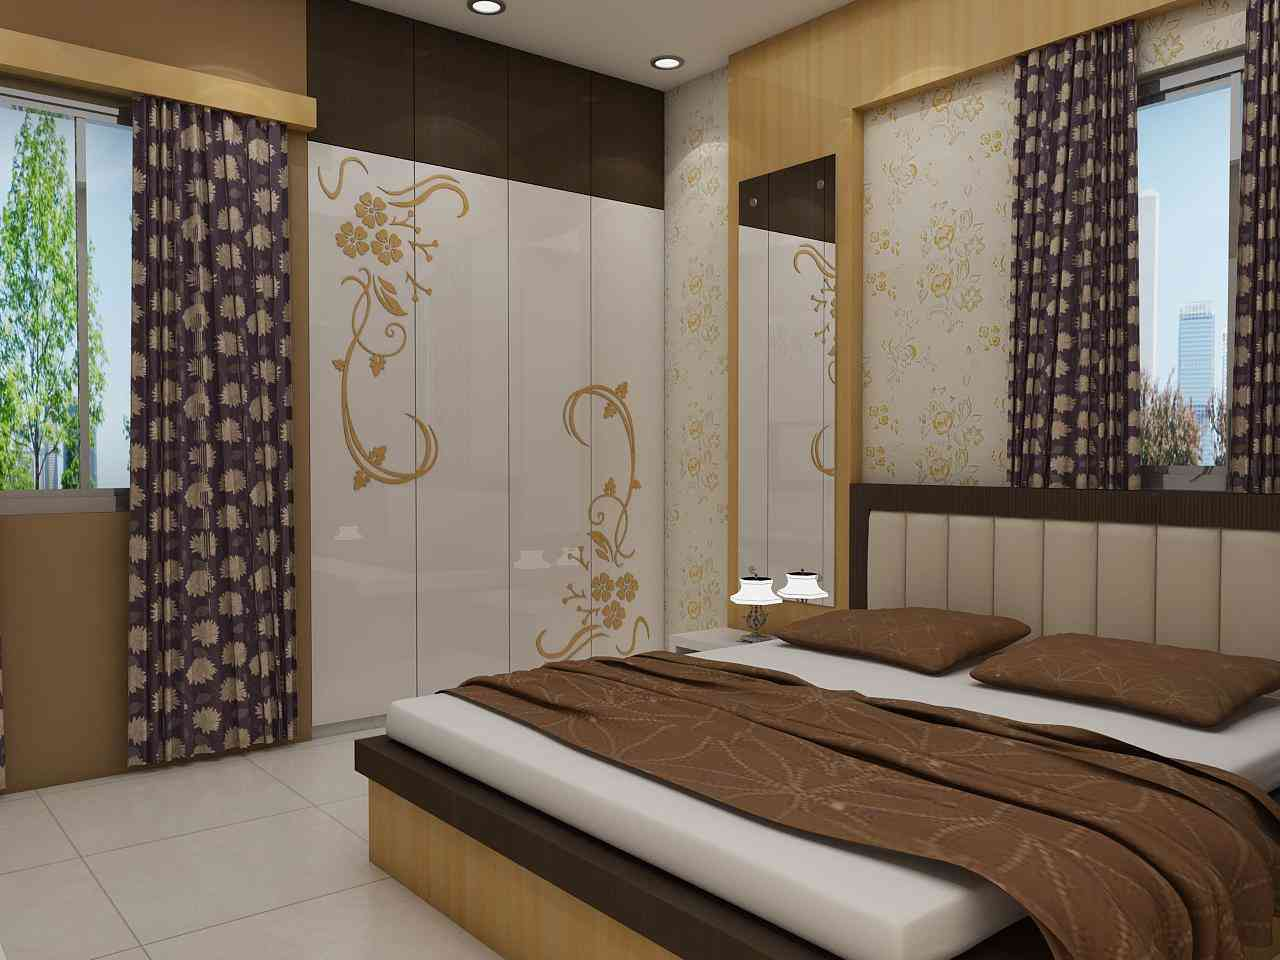 Wardrobe designs for Indian bedroom, Interior Design ...